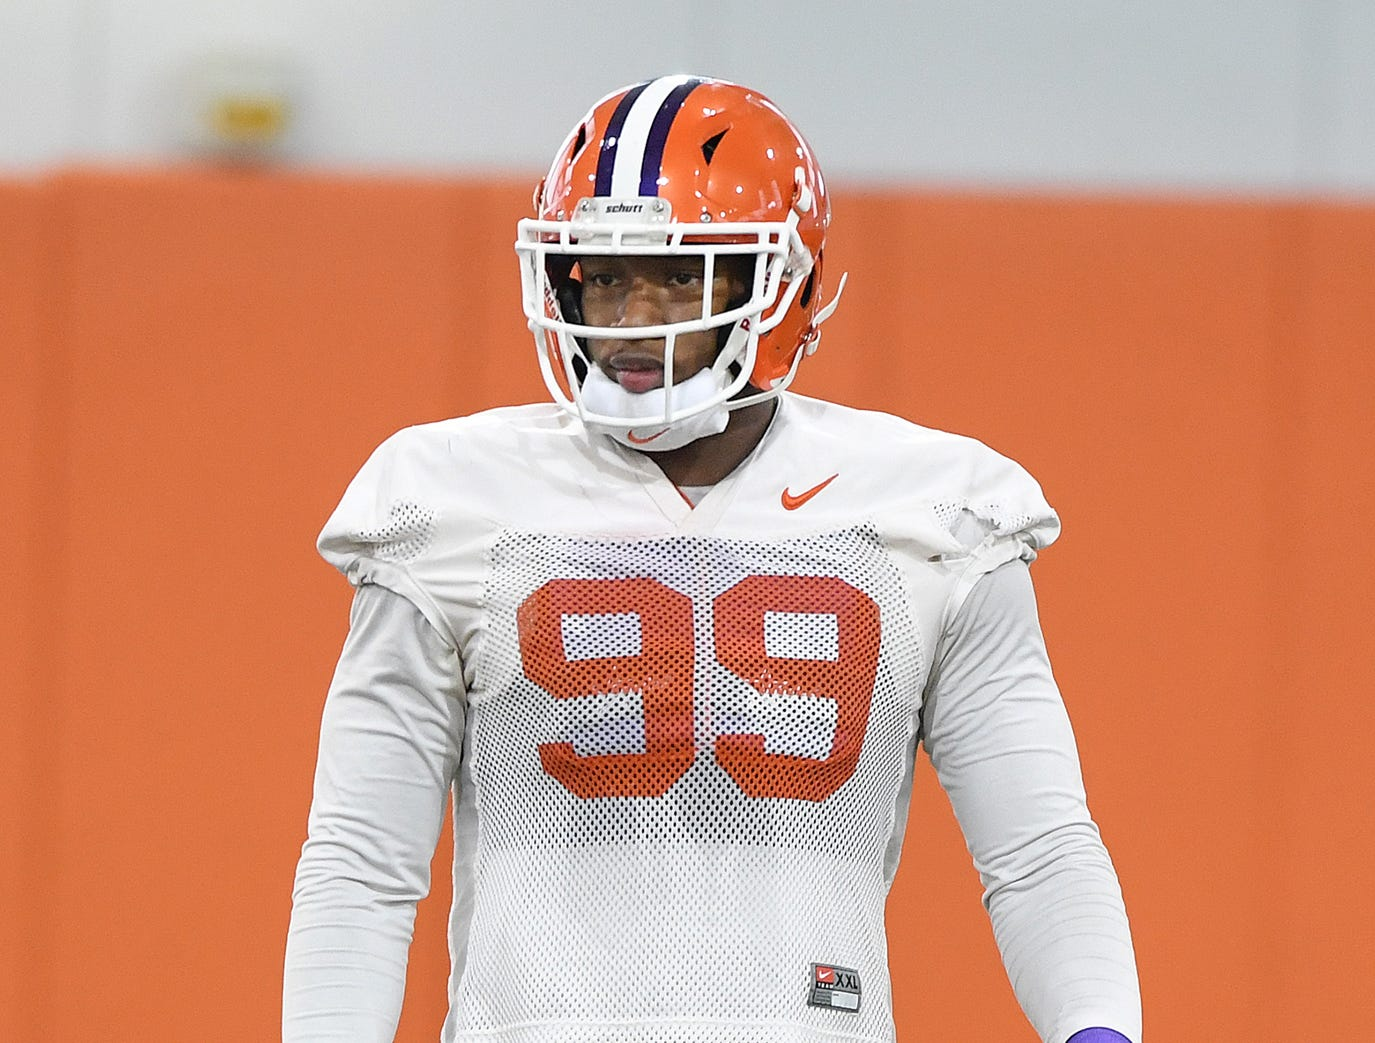 Clemson defensive lineman Clelin Ferrell (99) during the Tigers Cotton Bowl practice on Wednesday, December 12, 2018.